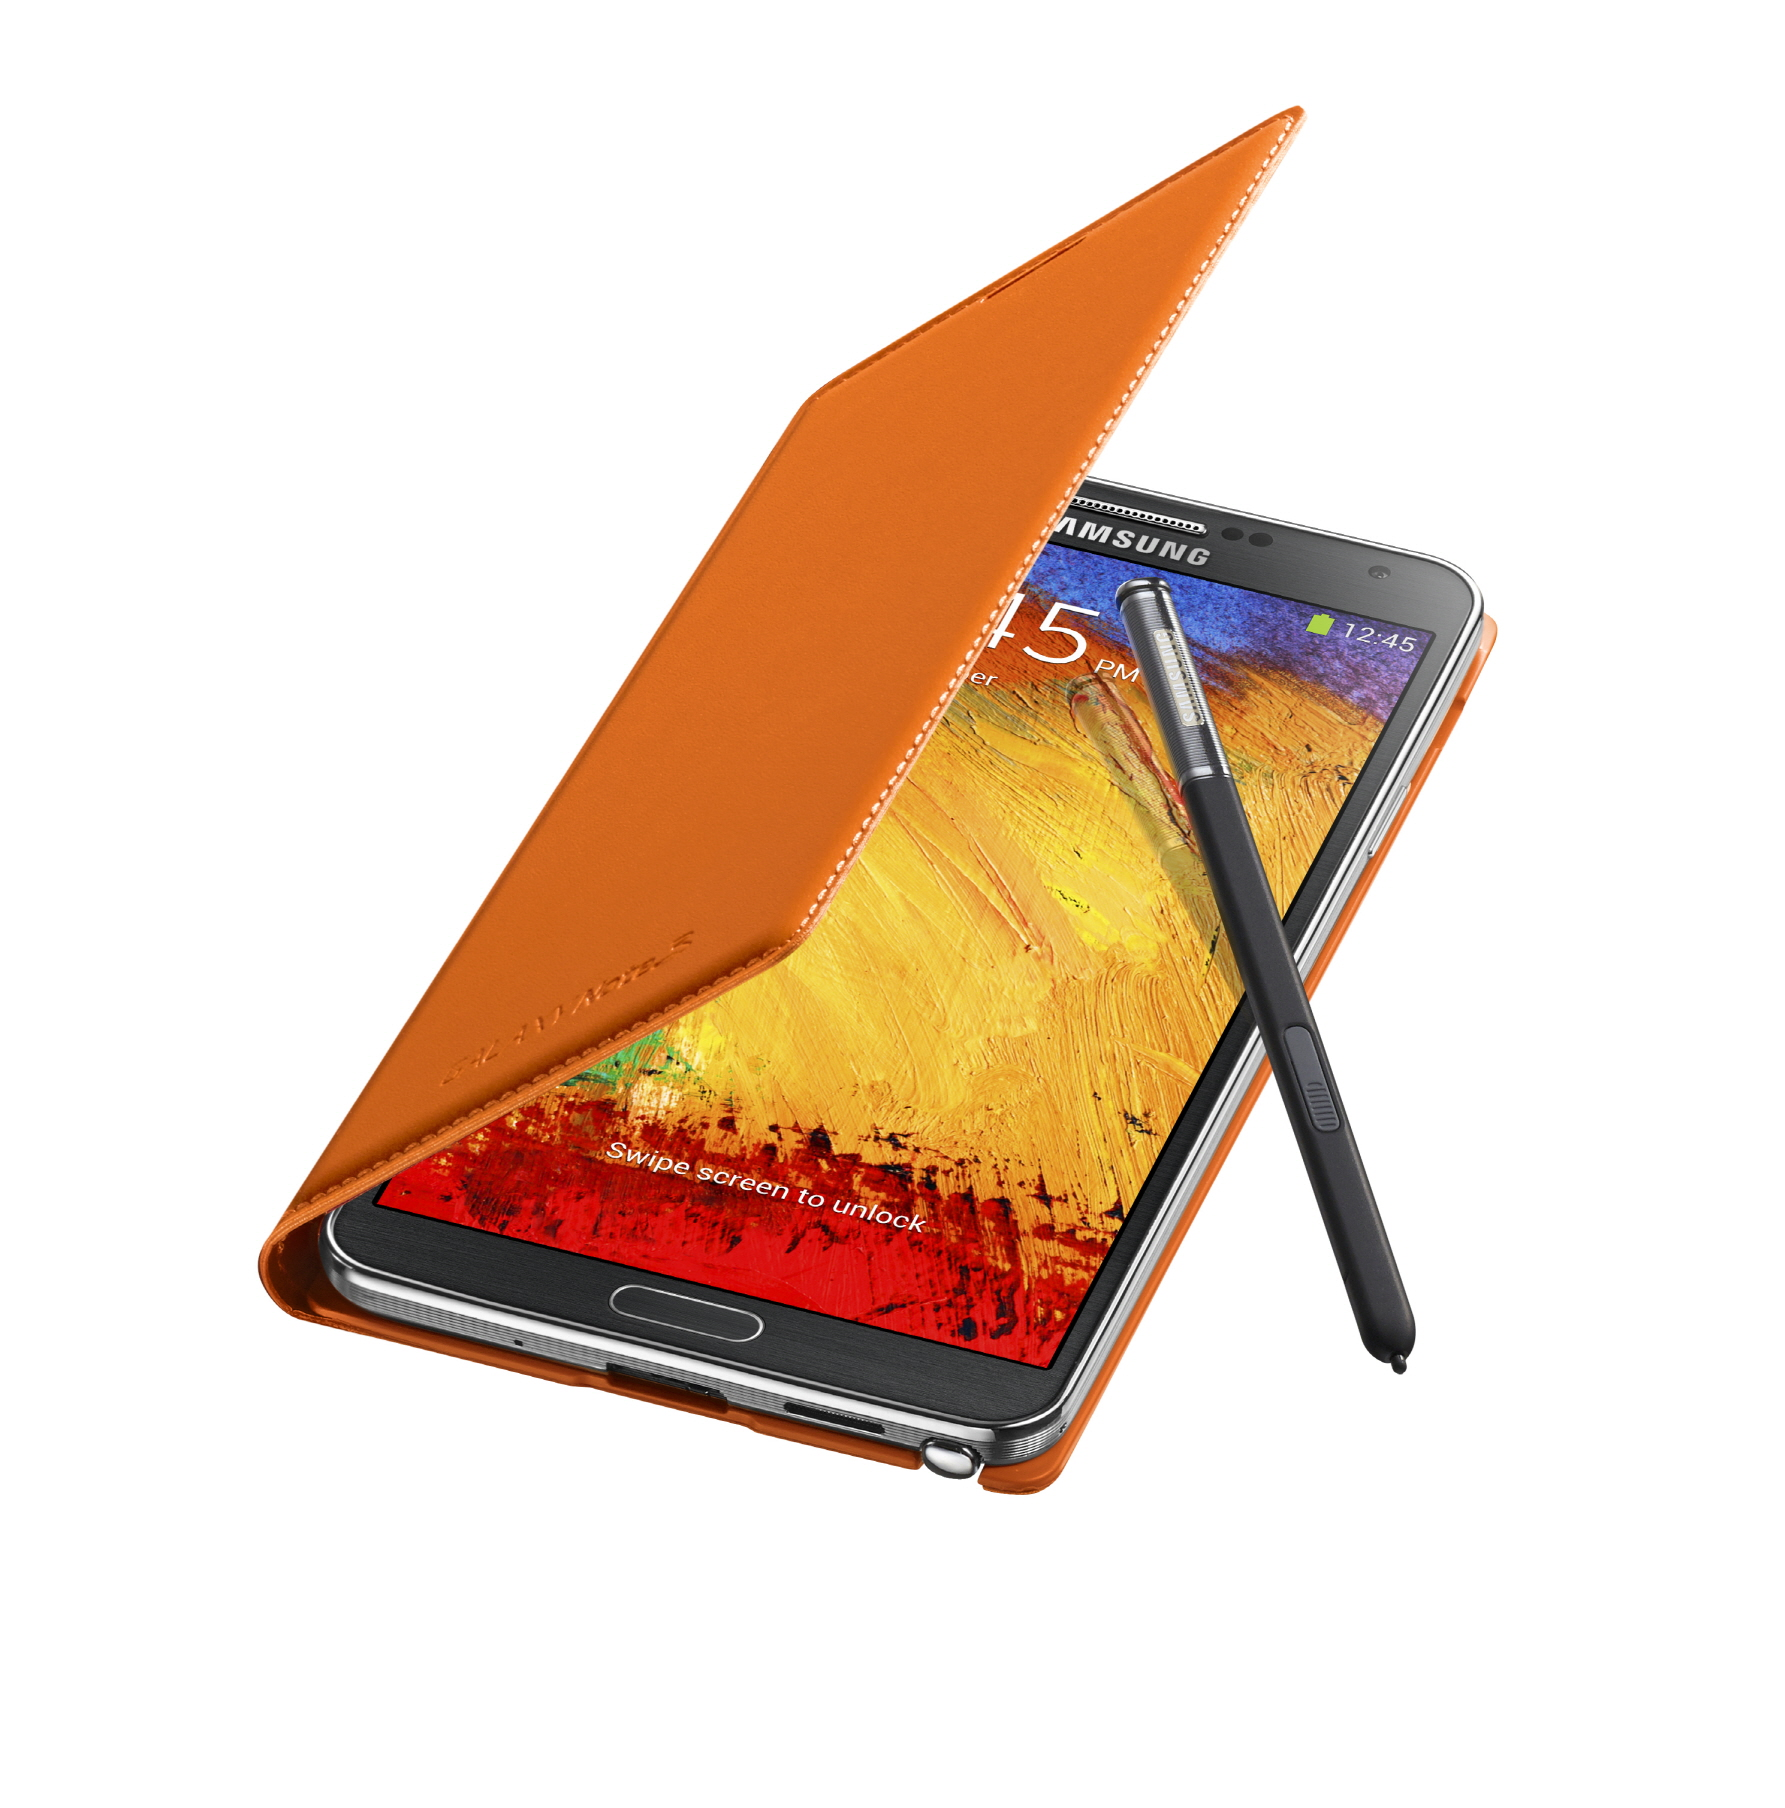 Galaxy Note3 FlipCover 004 Open Pen Wild Orange